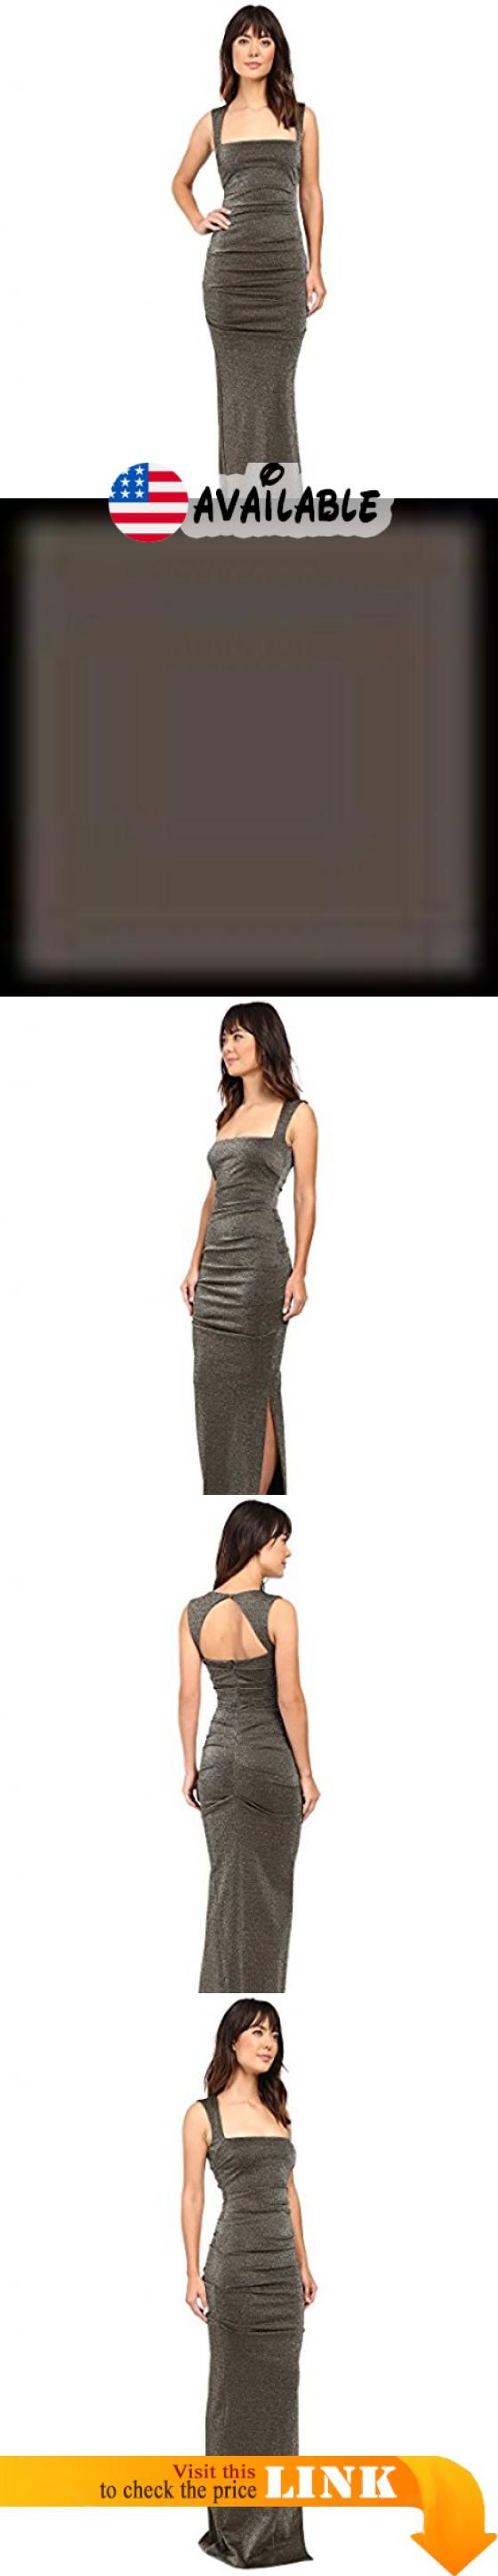 B01kywjw8e Nicole Miller Women S Lurex Ponte Felicity Gown Gold Dress Size Chart An Elegant Evening Awaits You In This Bre